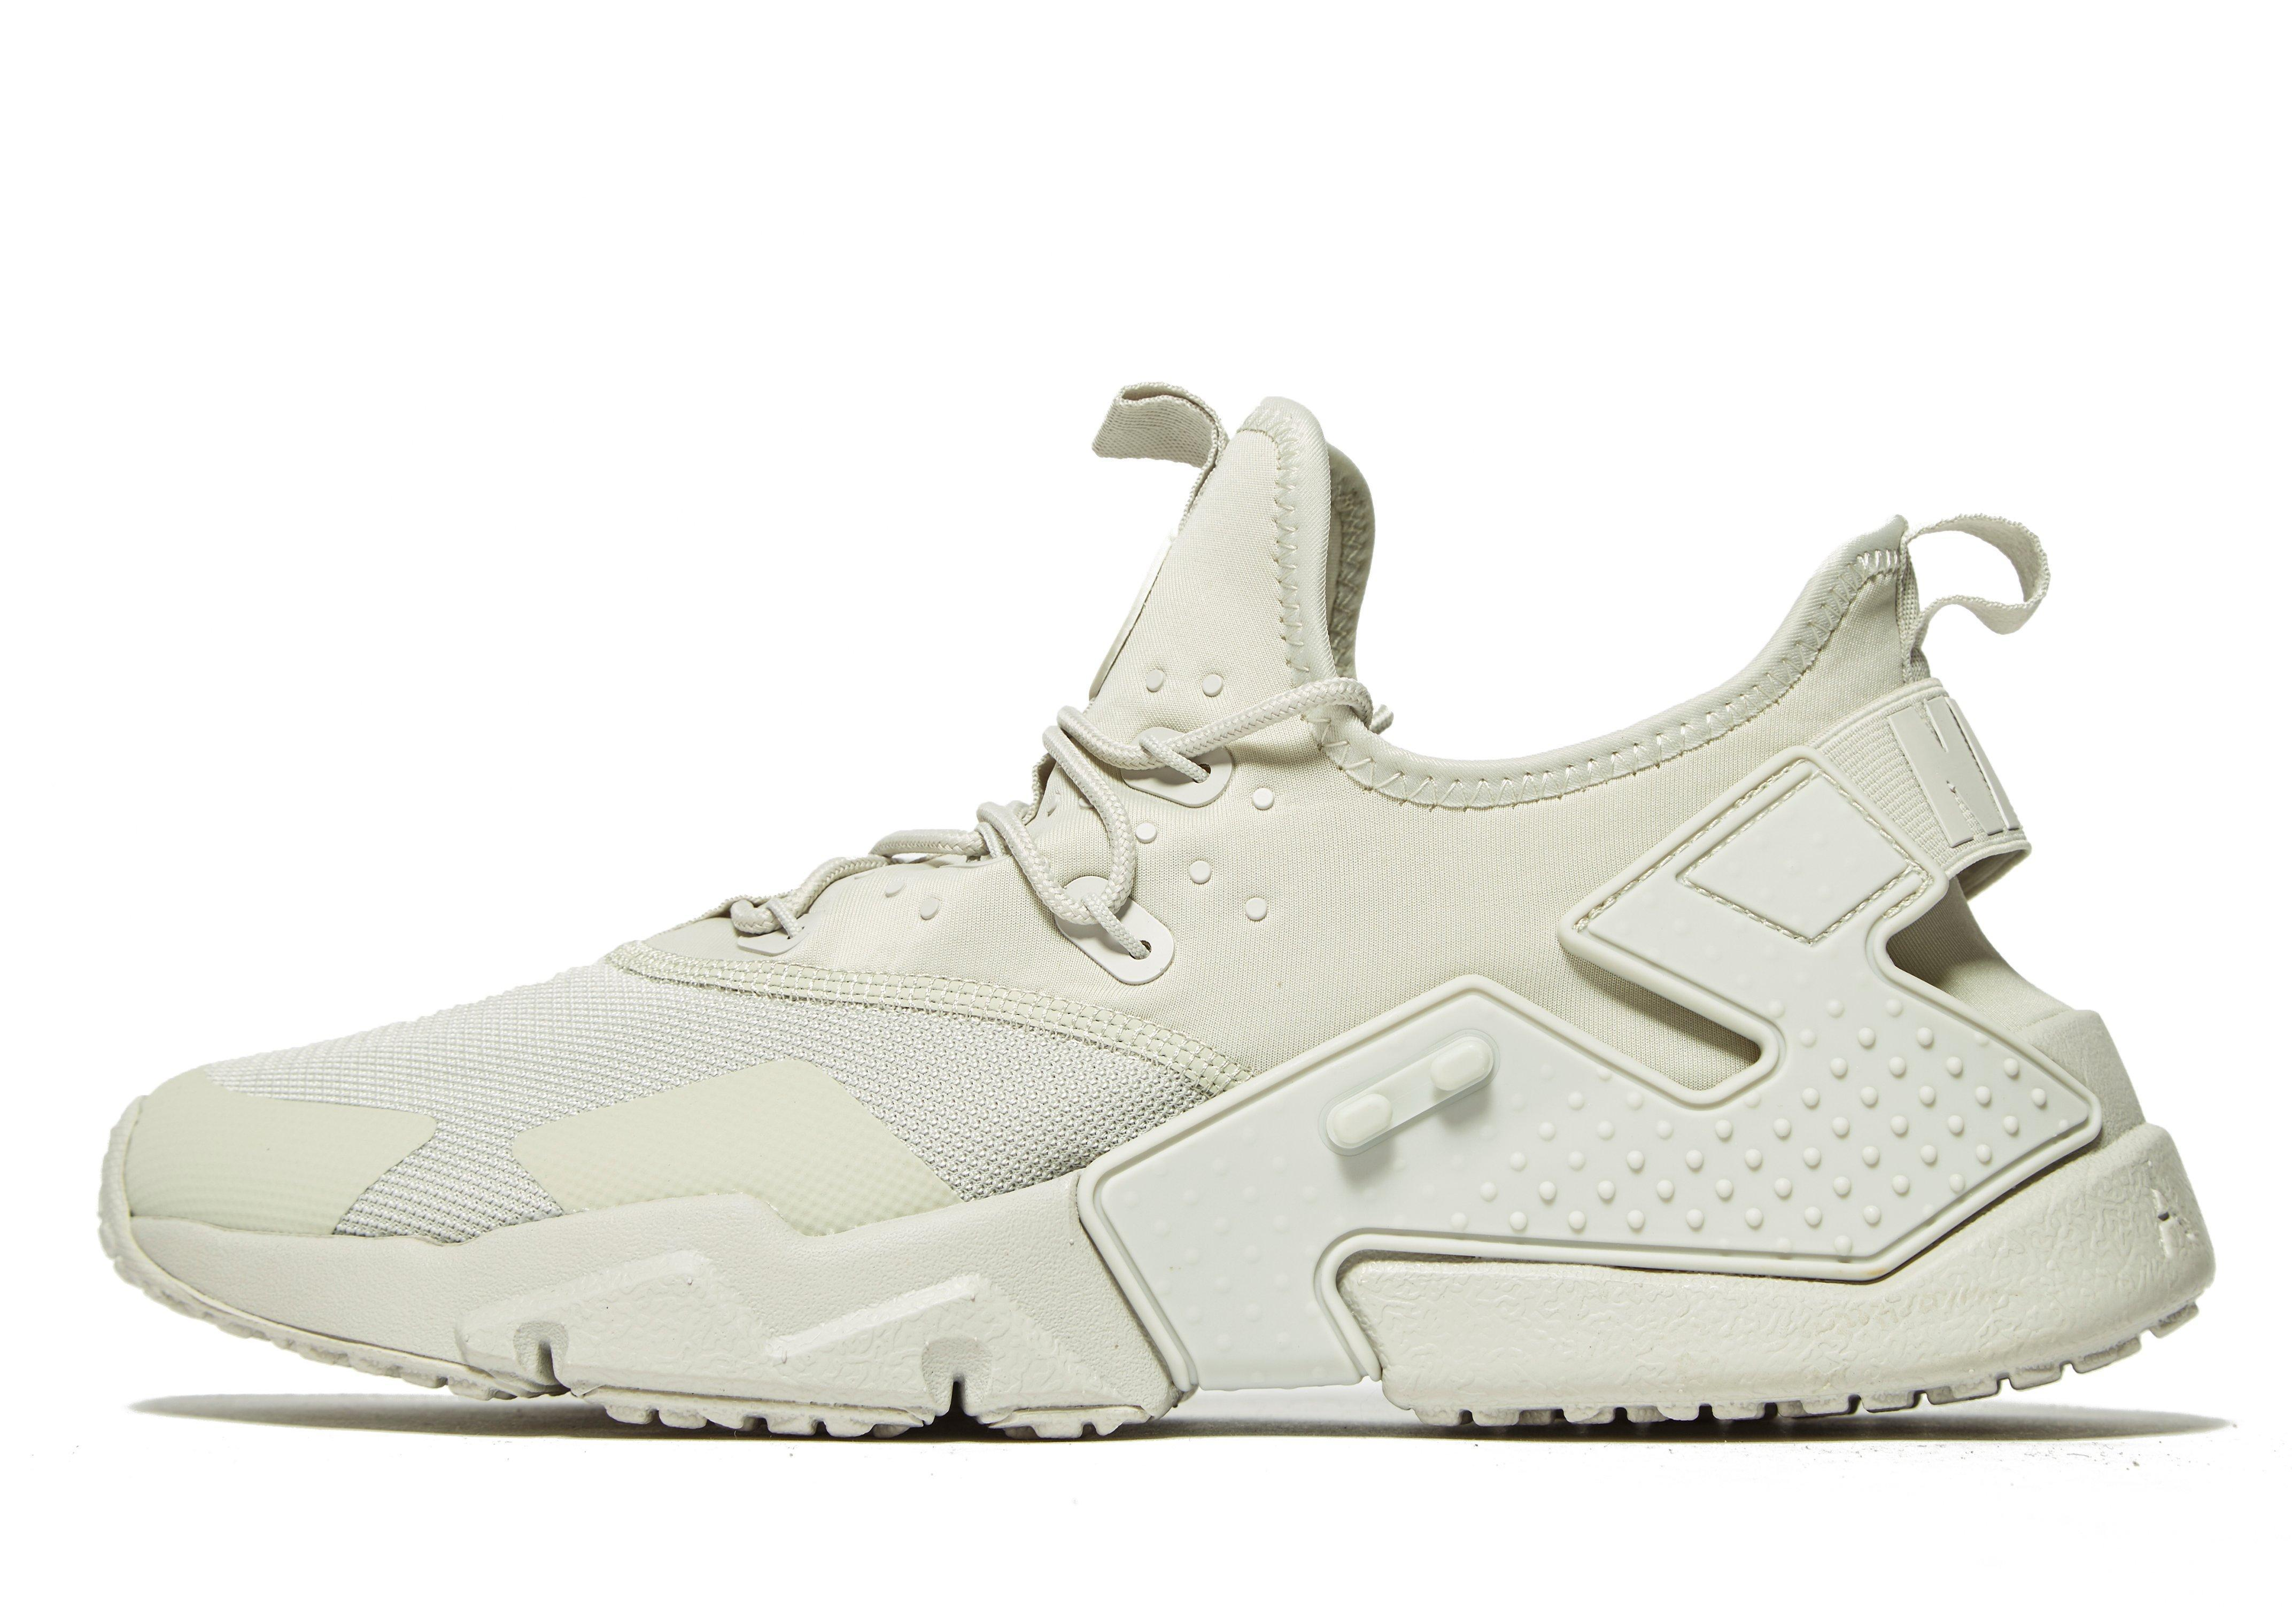 c0e470f9e83fc Gallery. Previously sold at  JD Sports · Men s Nike Huarache ...